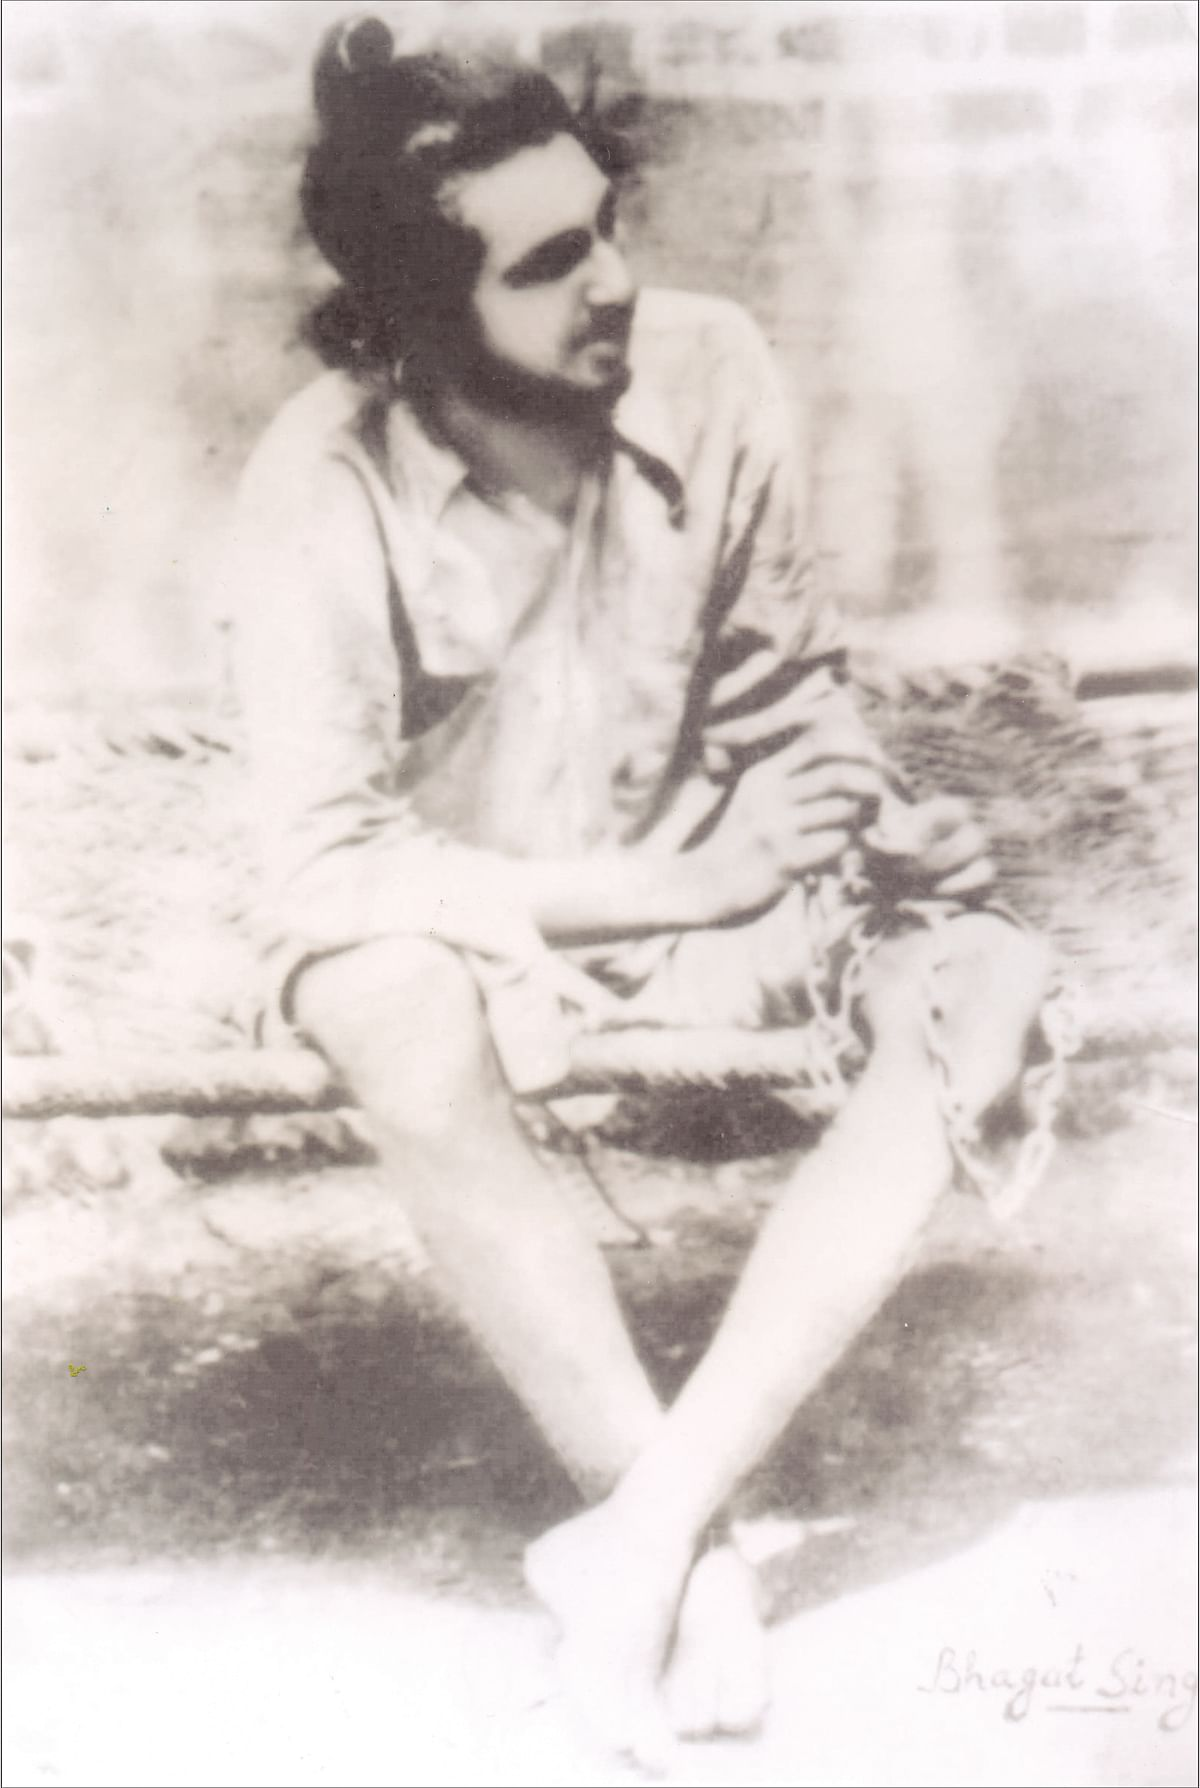 """One of the rare surviving images of Bhagat Singh. (Photo Courtesy: <a href=""""http://www.shahidbhagatsingh.org/index.asp?linkid=2"""">Shahidbhagatsingh.com</a>)"""